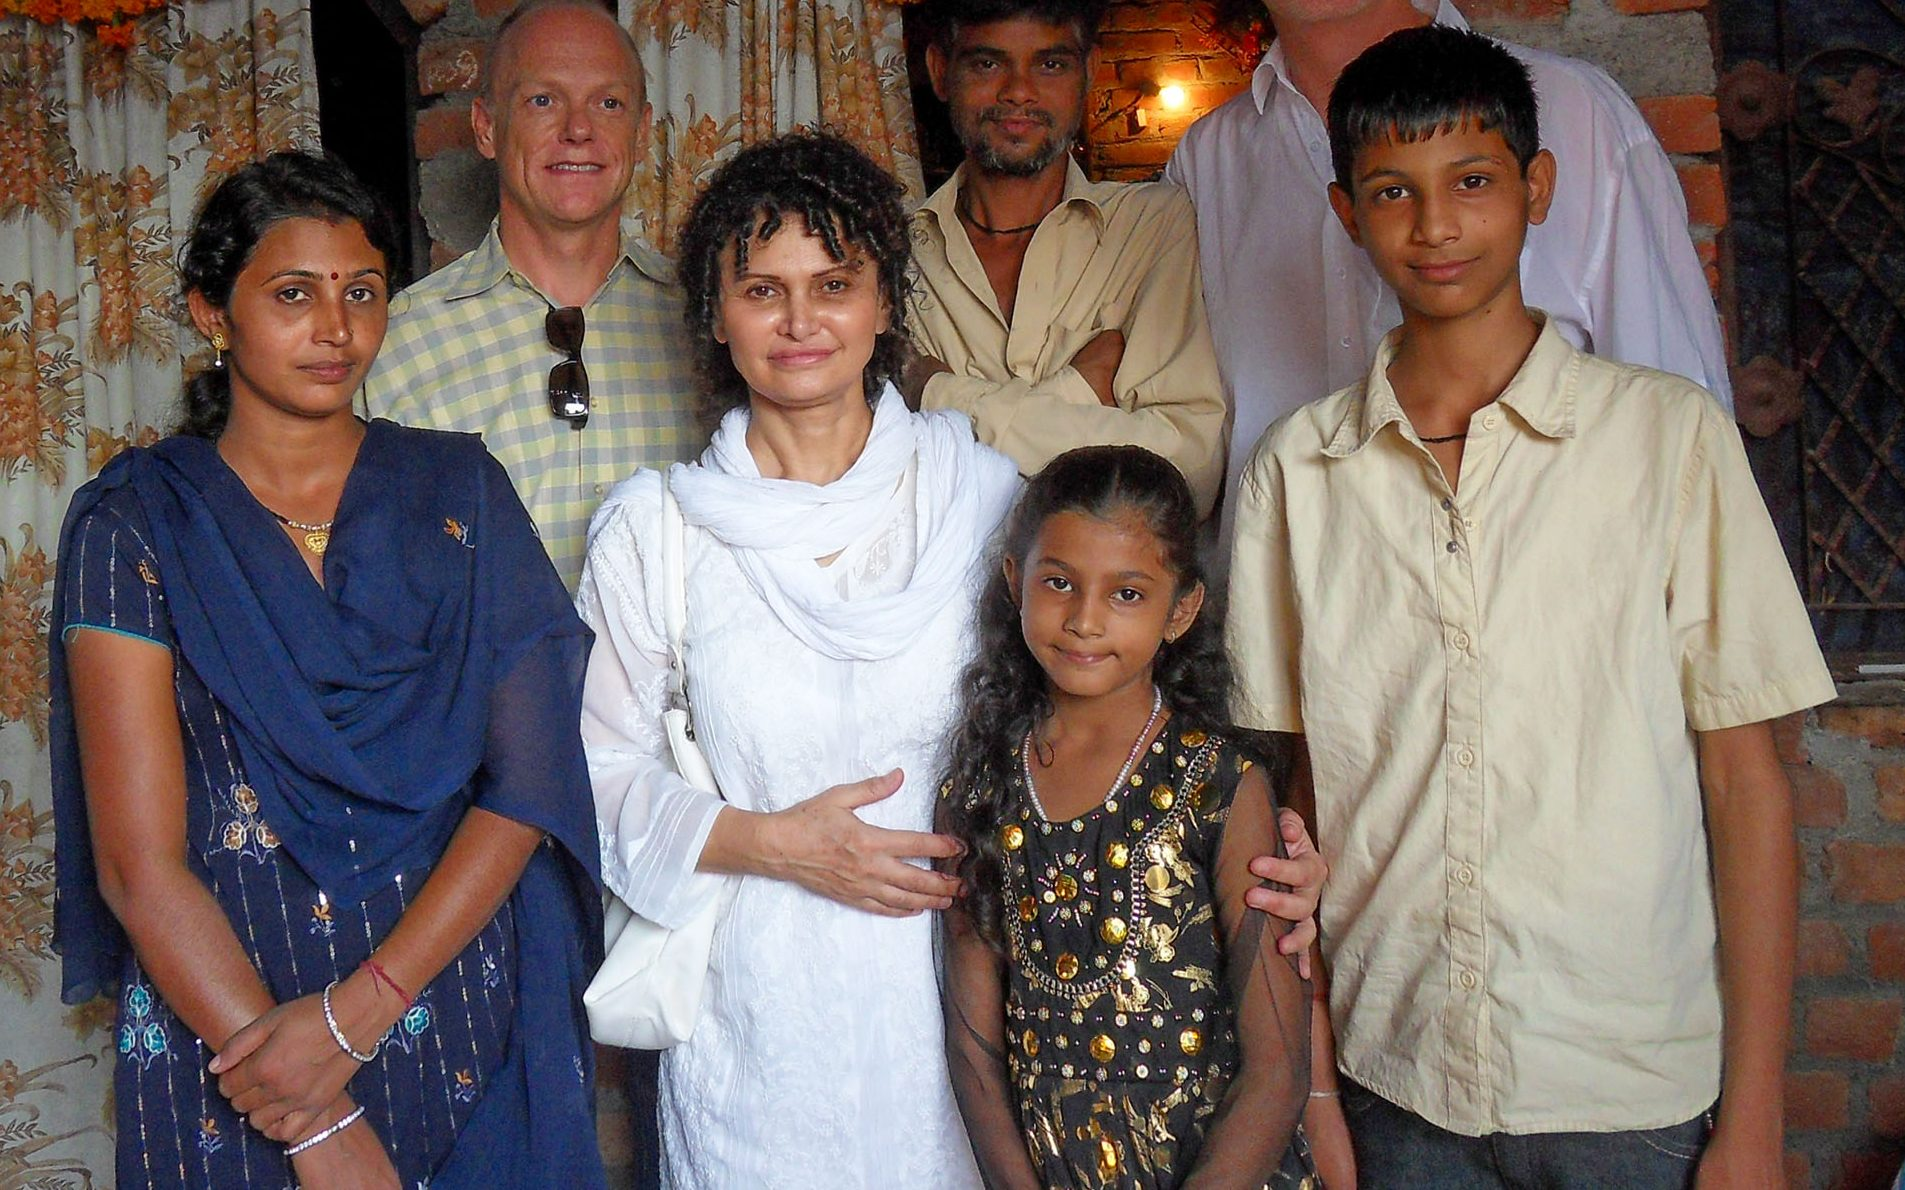 VIkrant (right) with his family in India